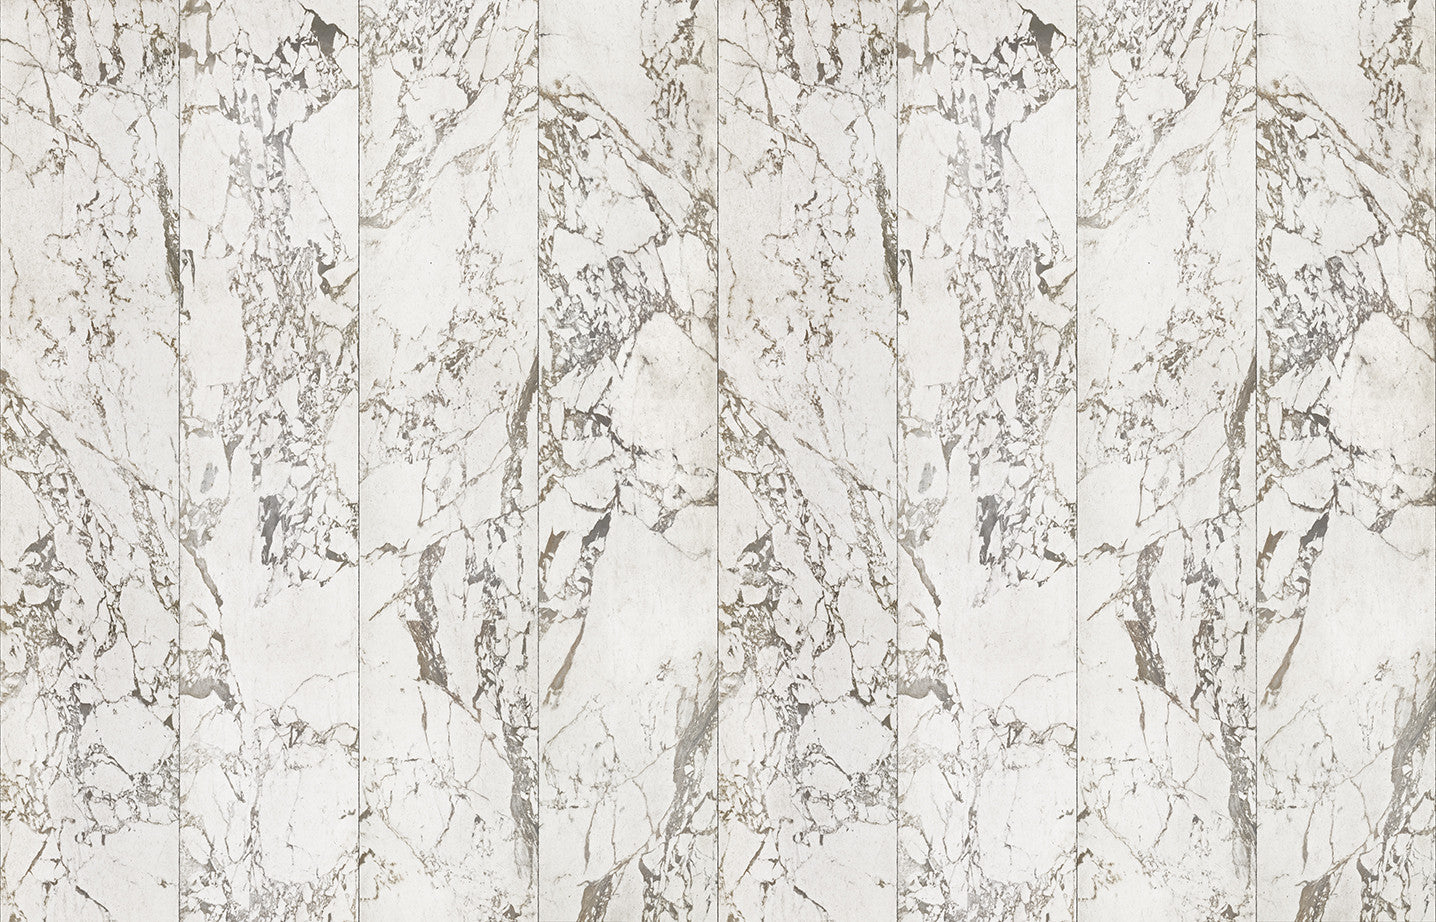 White Marble Wallpaper Design By Piet Hein Eek For Nlxl